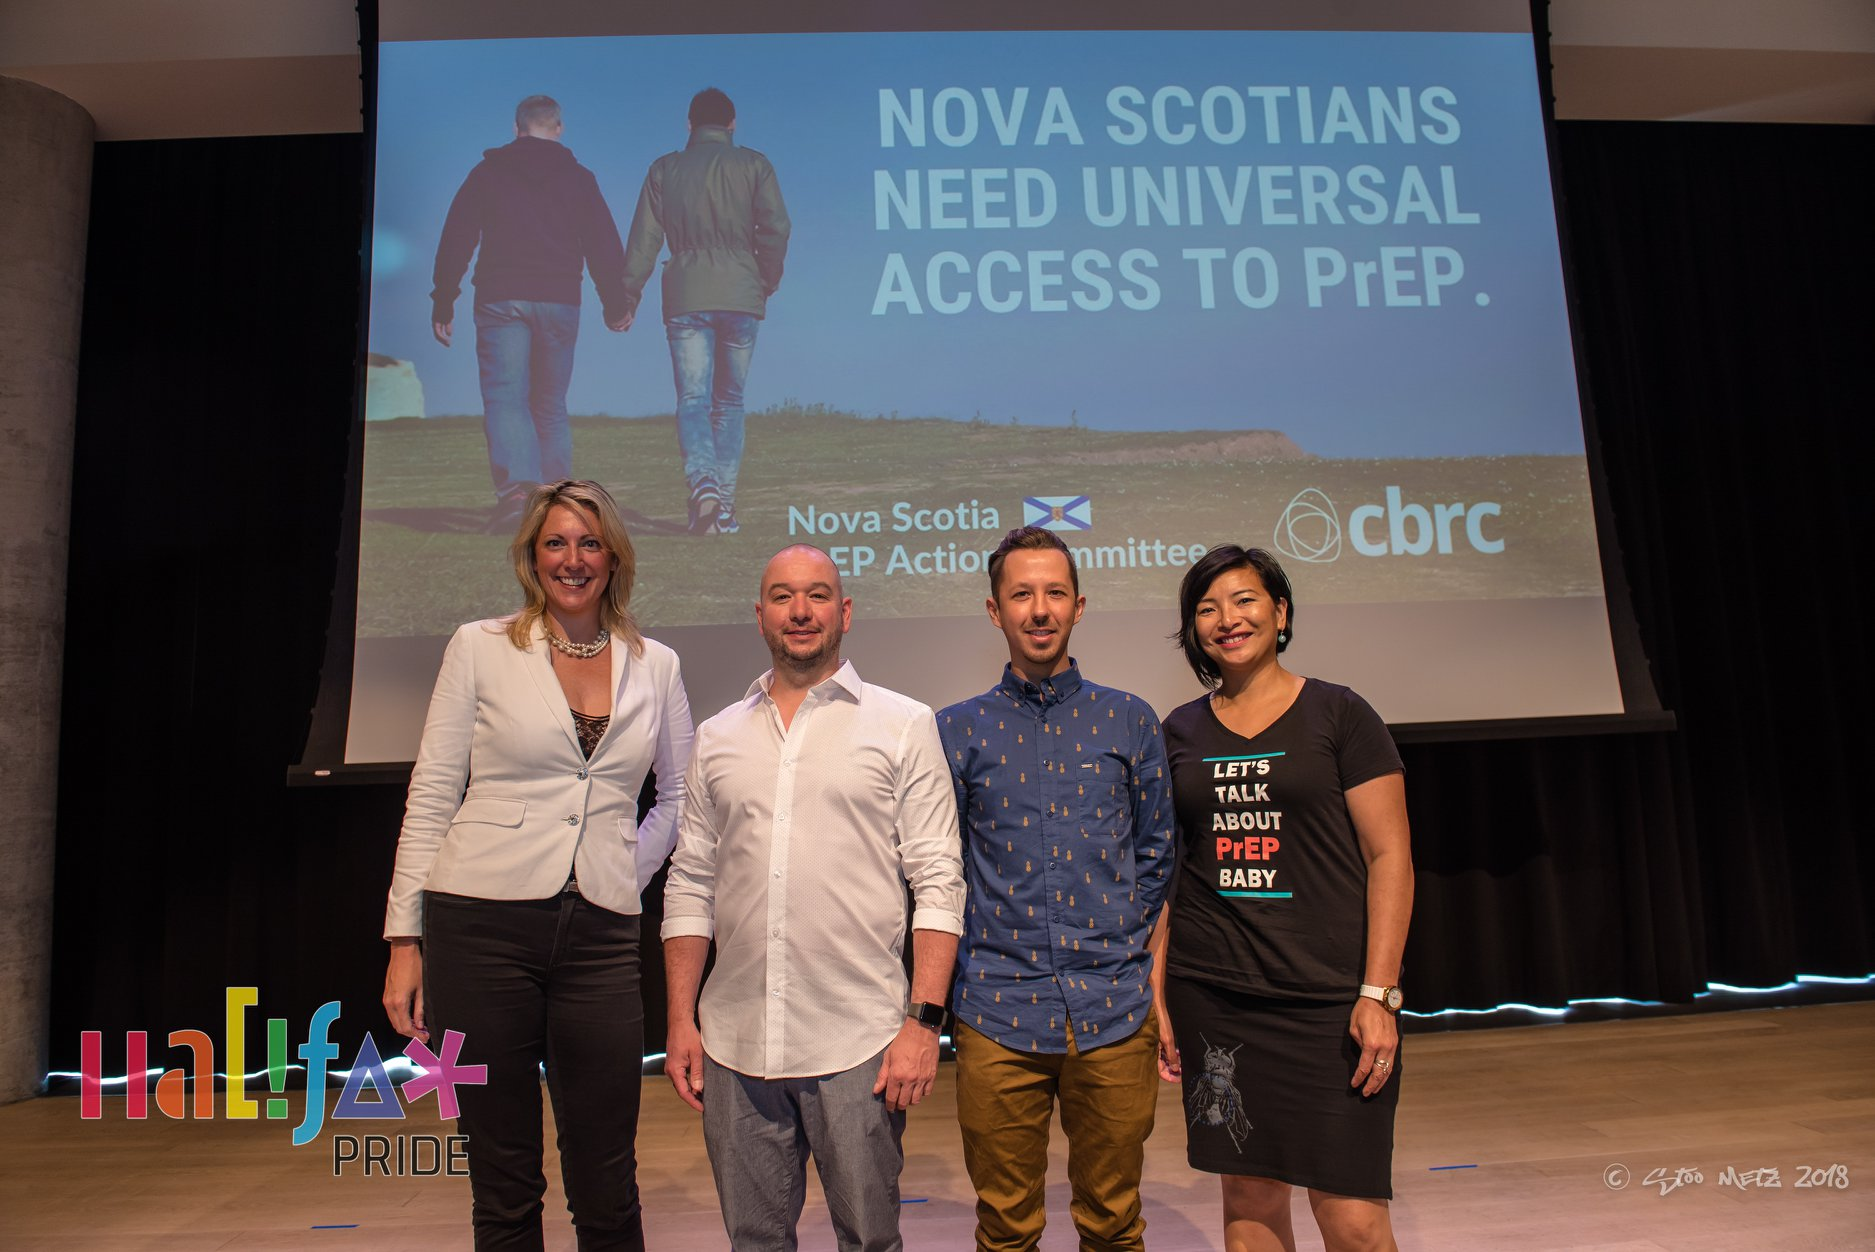 From left to right: Dr. Lisa Barrett, Dr. Matt Numer, Rob Higgins, San Patten. Photo courtesy of Halifax Pride. Photo by Stoo Metz.